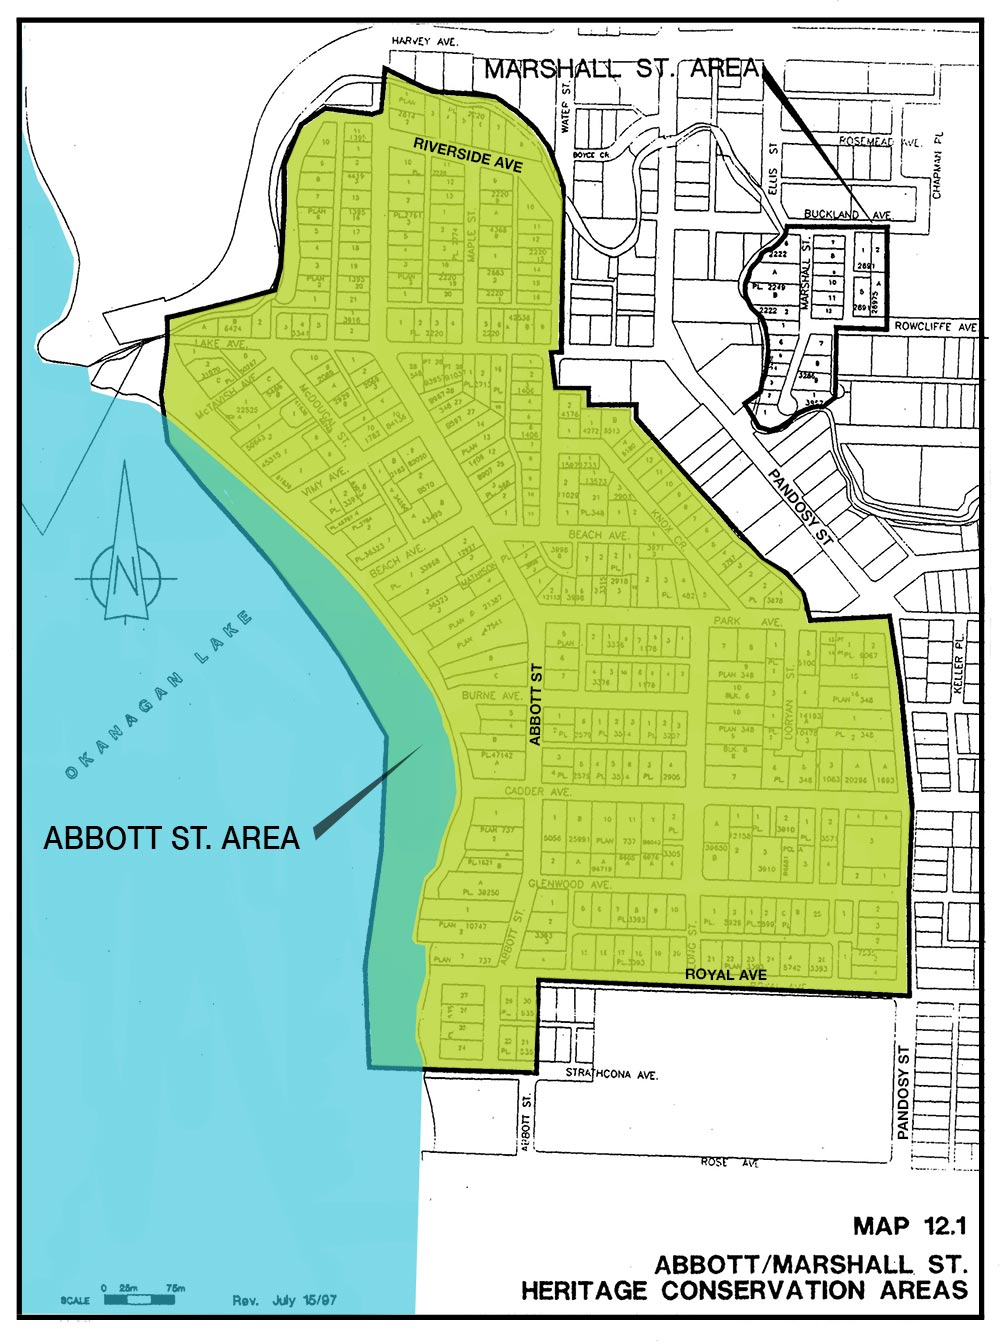 City map of the Abbott/Marshall Street Conservation Areas